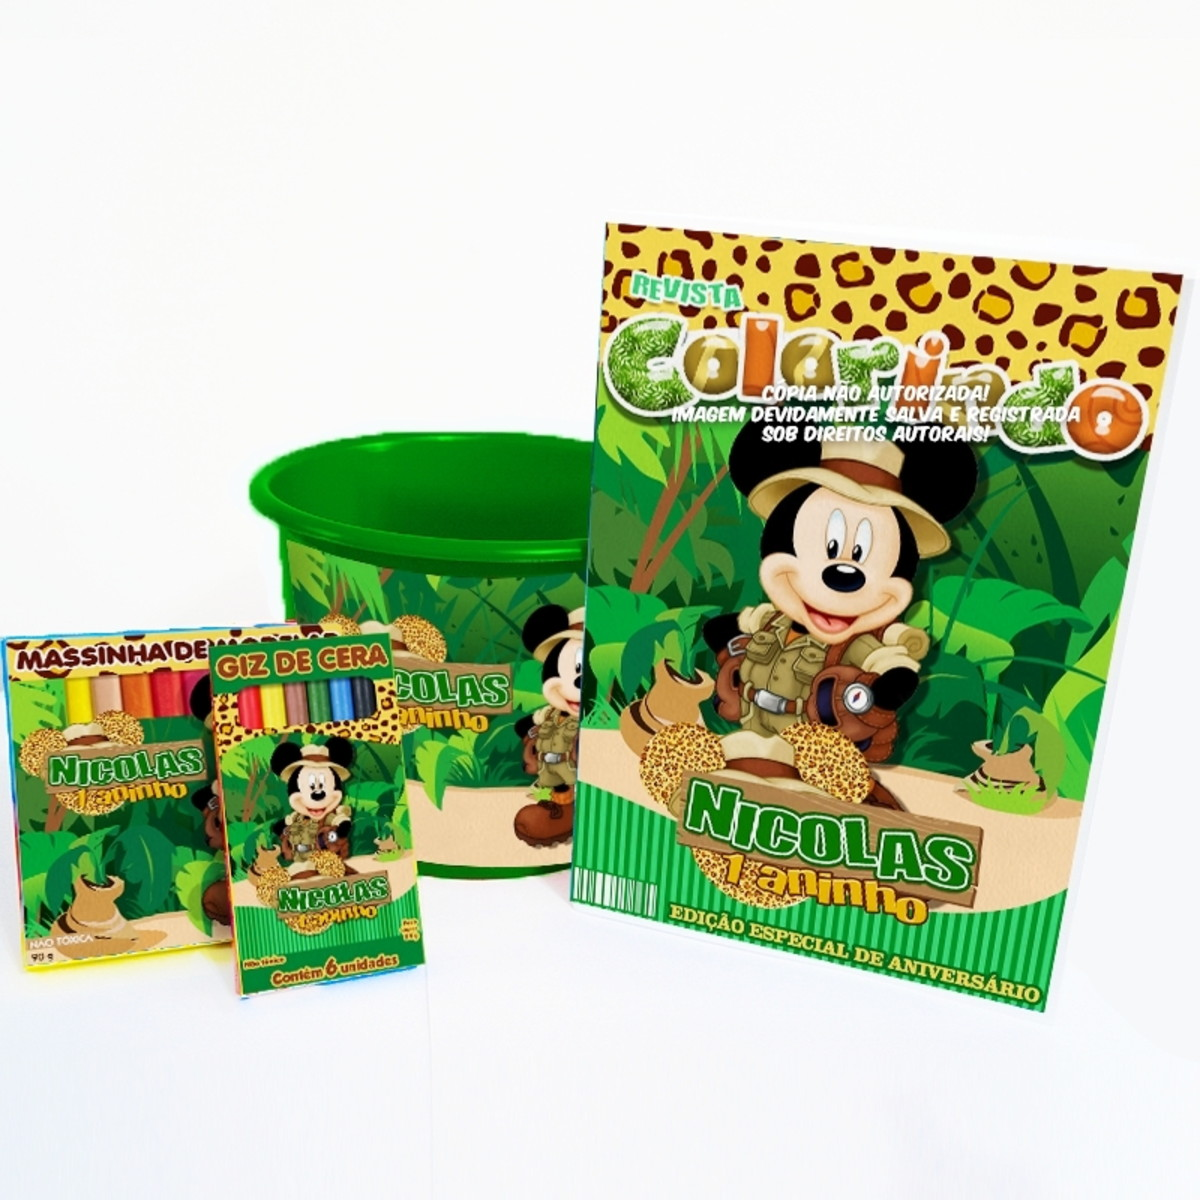 balde mickey safari kit colorir massinha personalizado no elo7